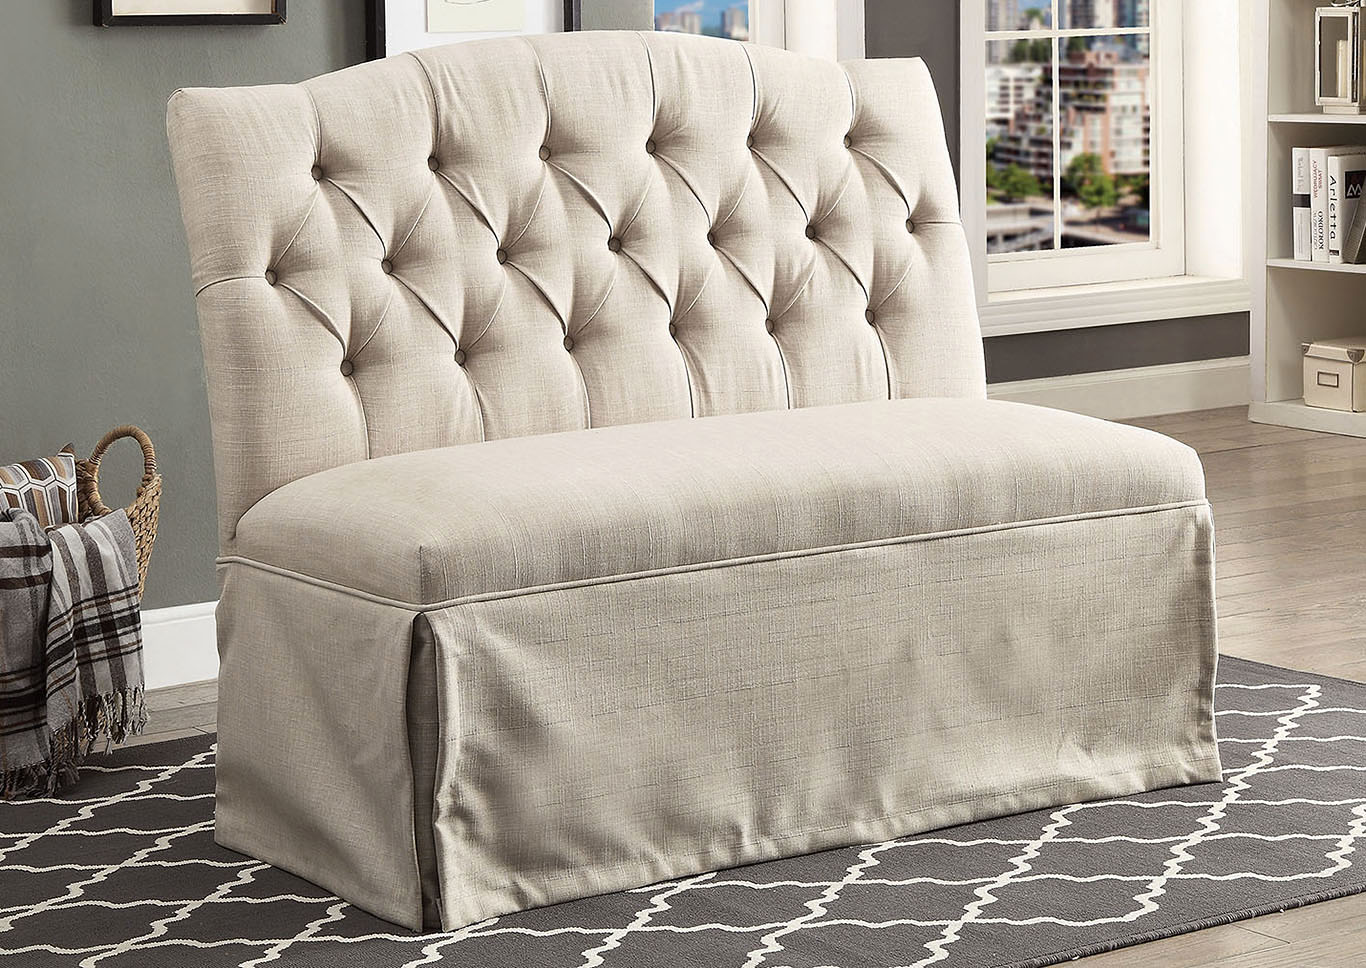 bench wingback product of america garden furniture miere loveseat romantic tufted home